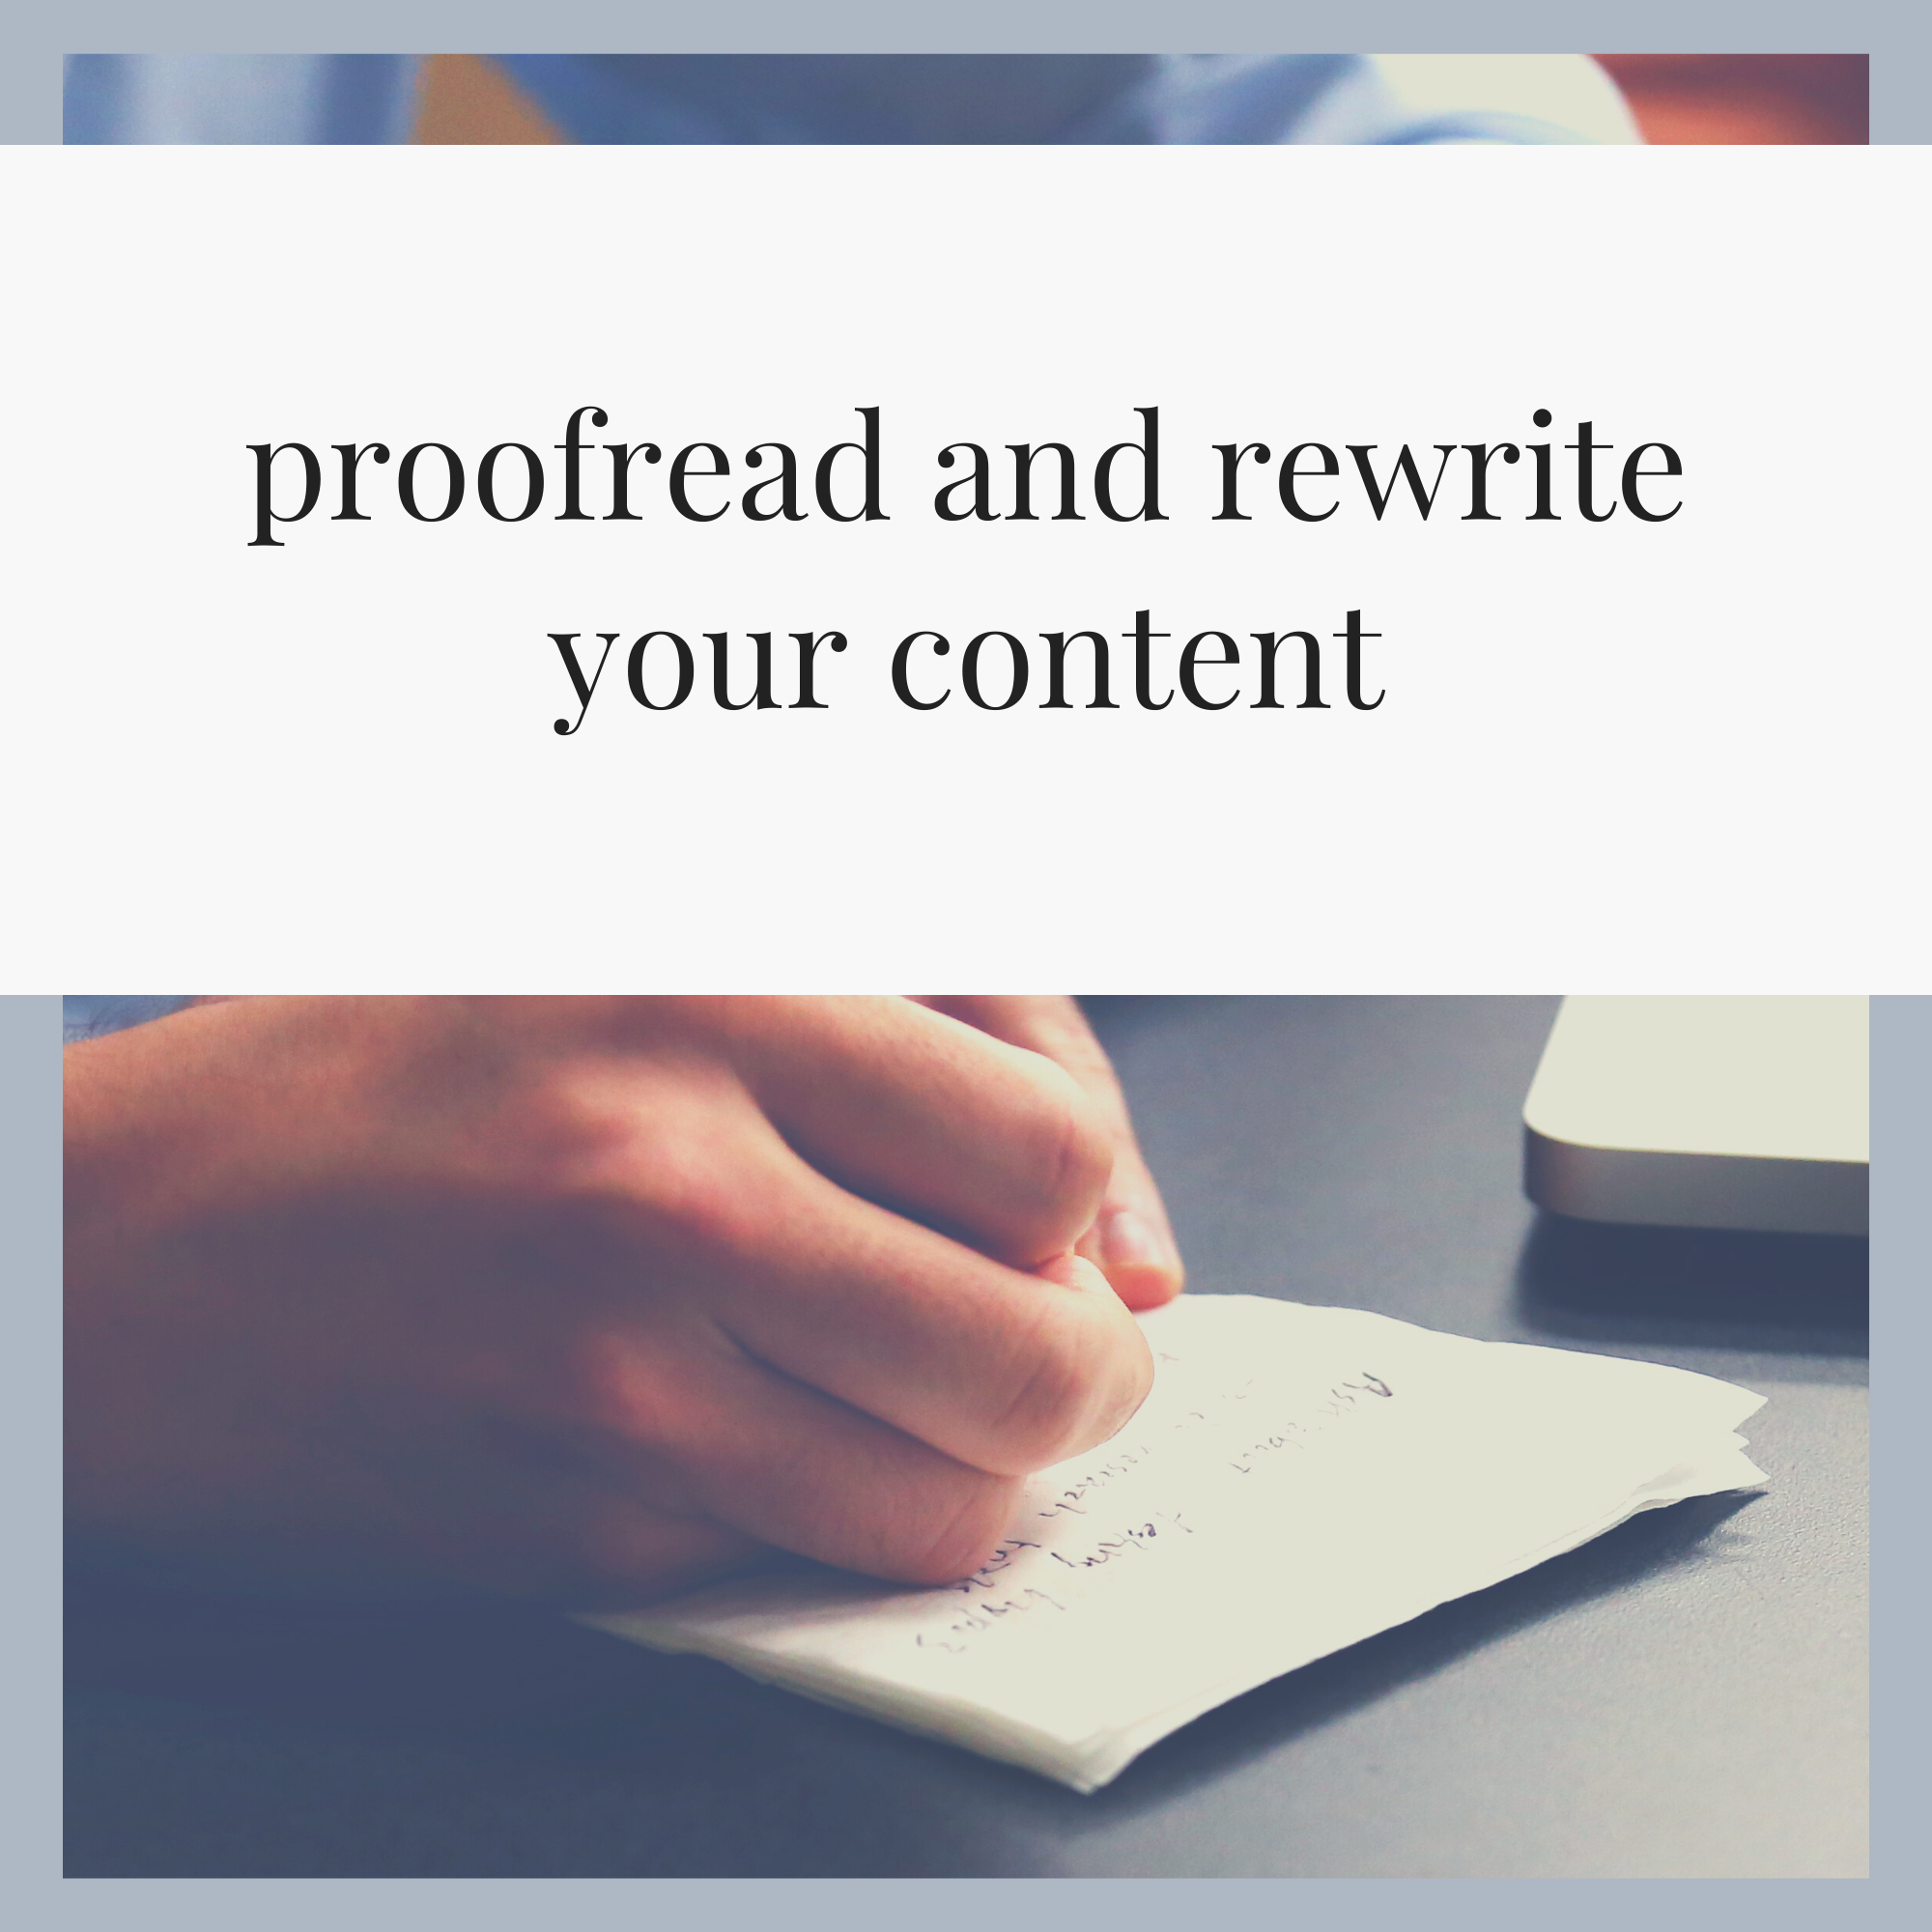 I will do proofread and rewrite your content